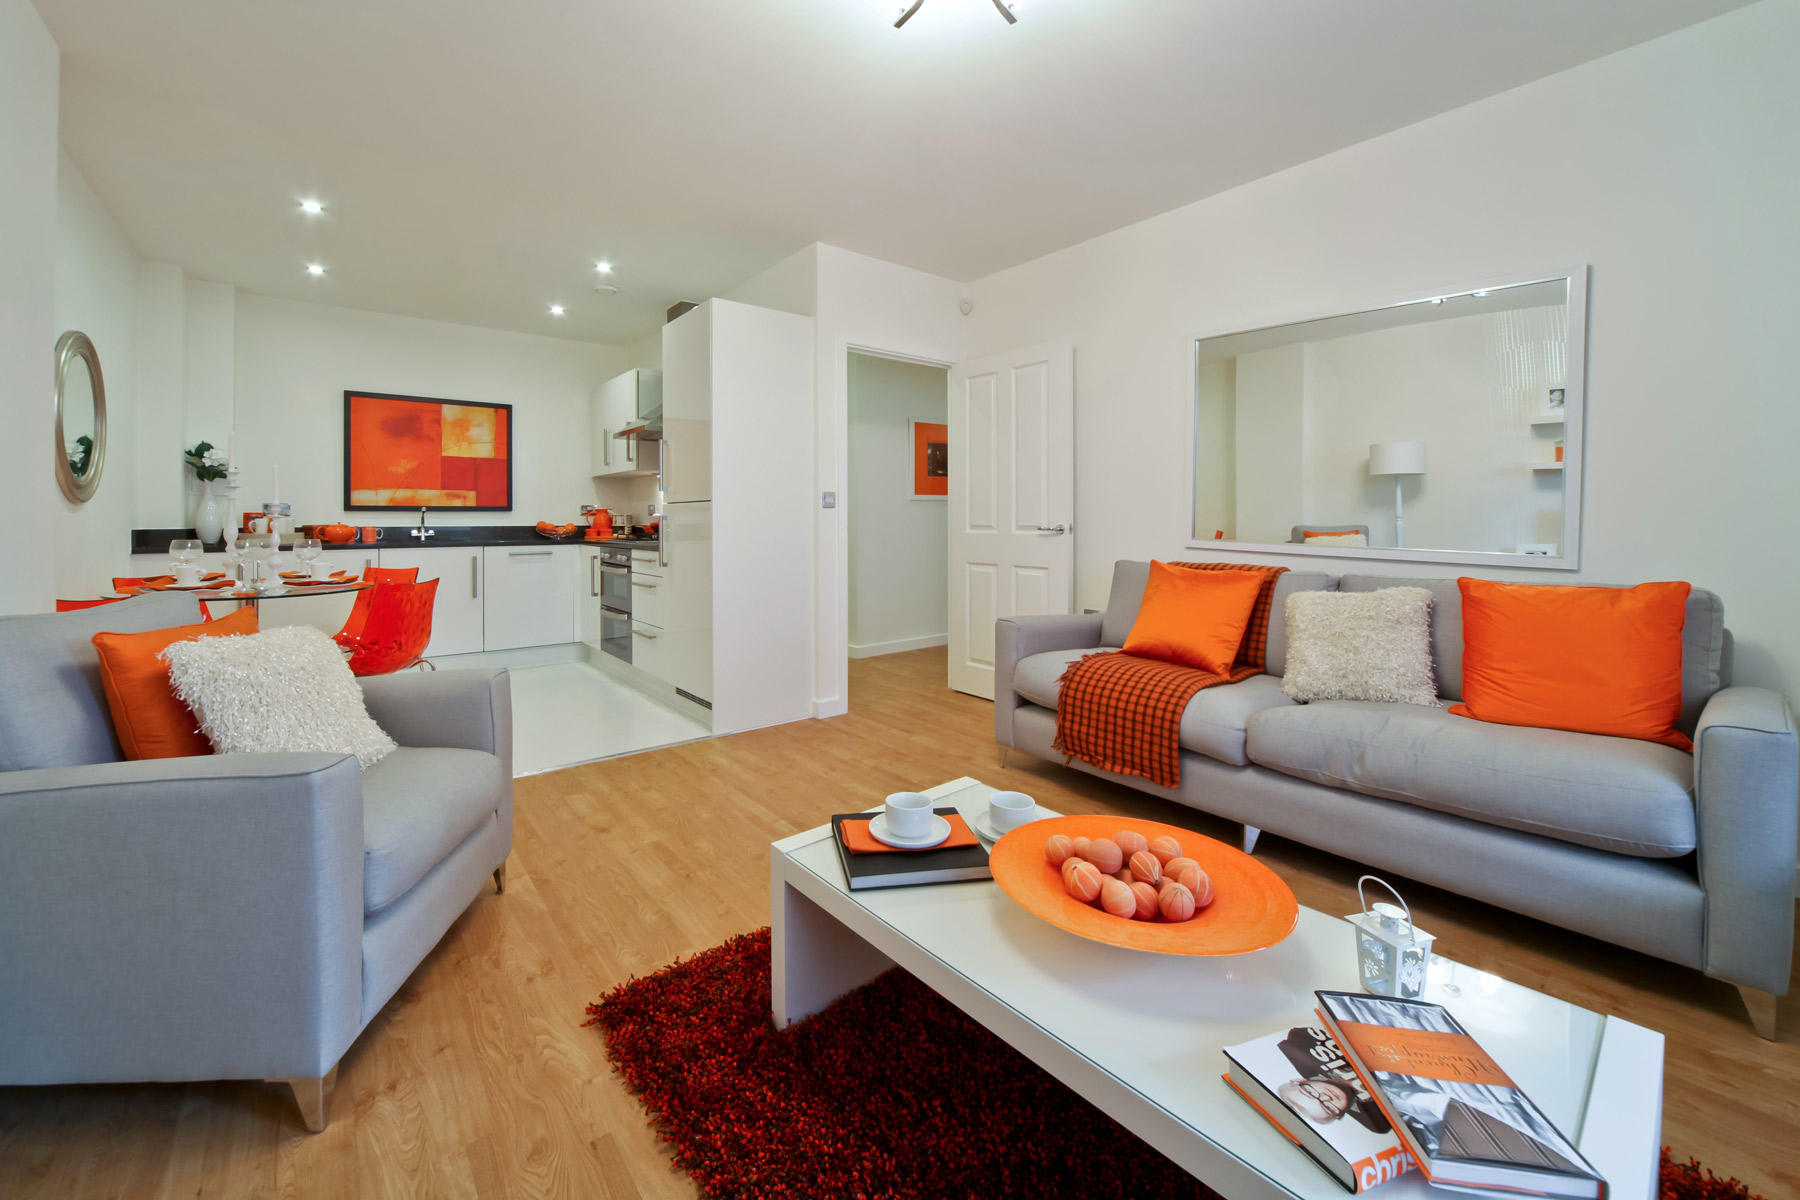 A typical Taylor Wimpey apartment living area and kitchen.